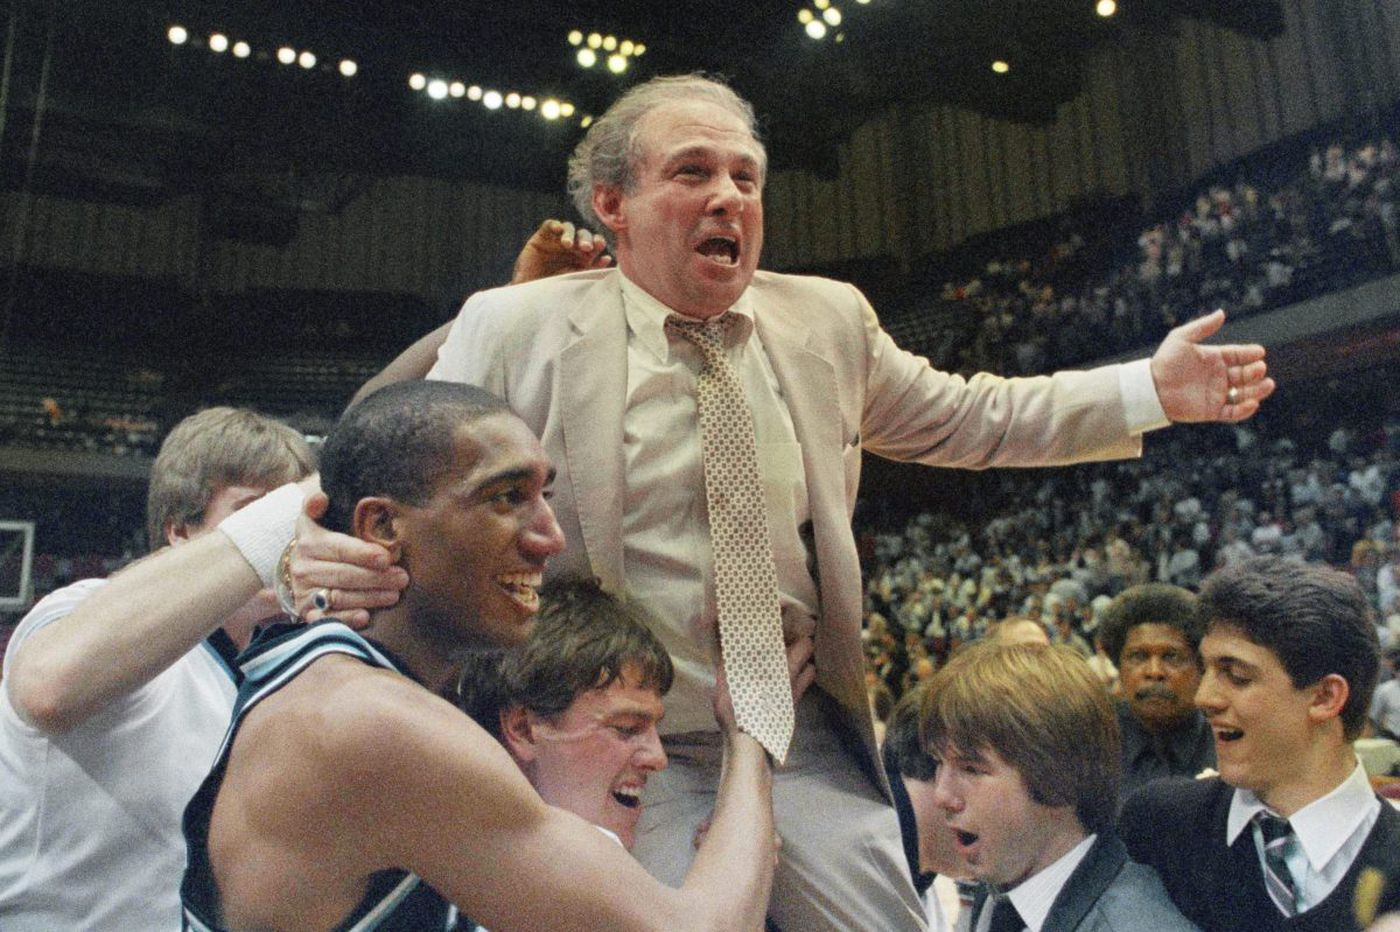 Rollie Massimino funeral, viewing finalized